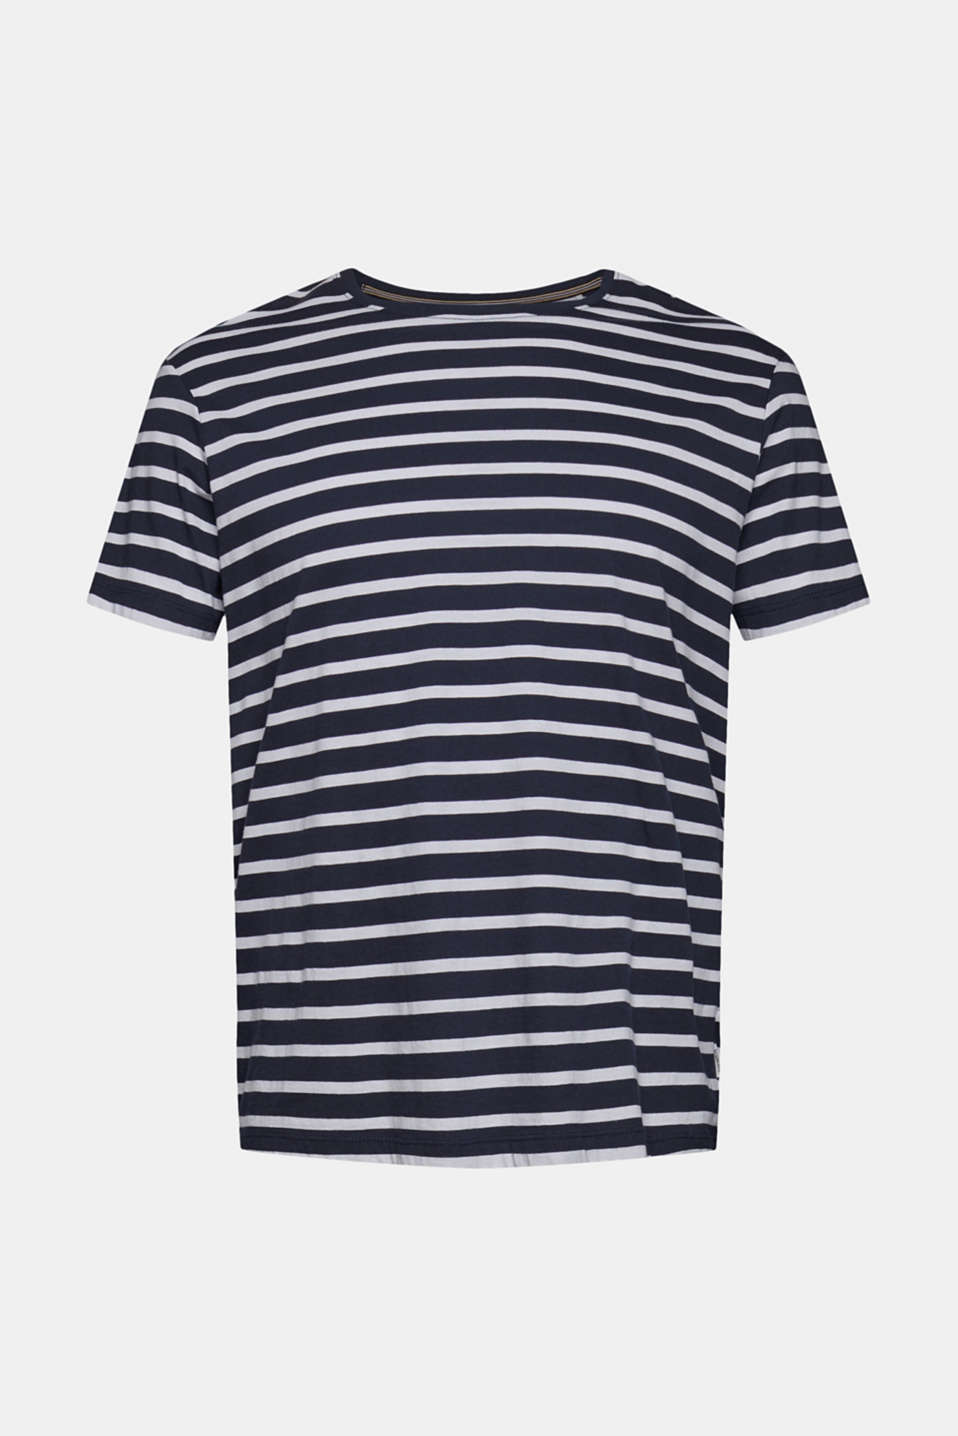 Jersey T-shirt in 100% cotton, NAVY 3, detail image number 6